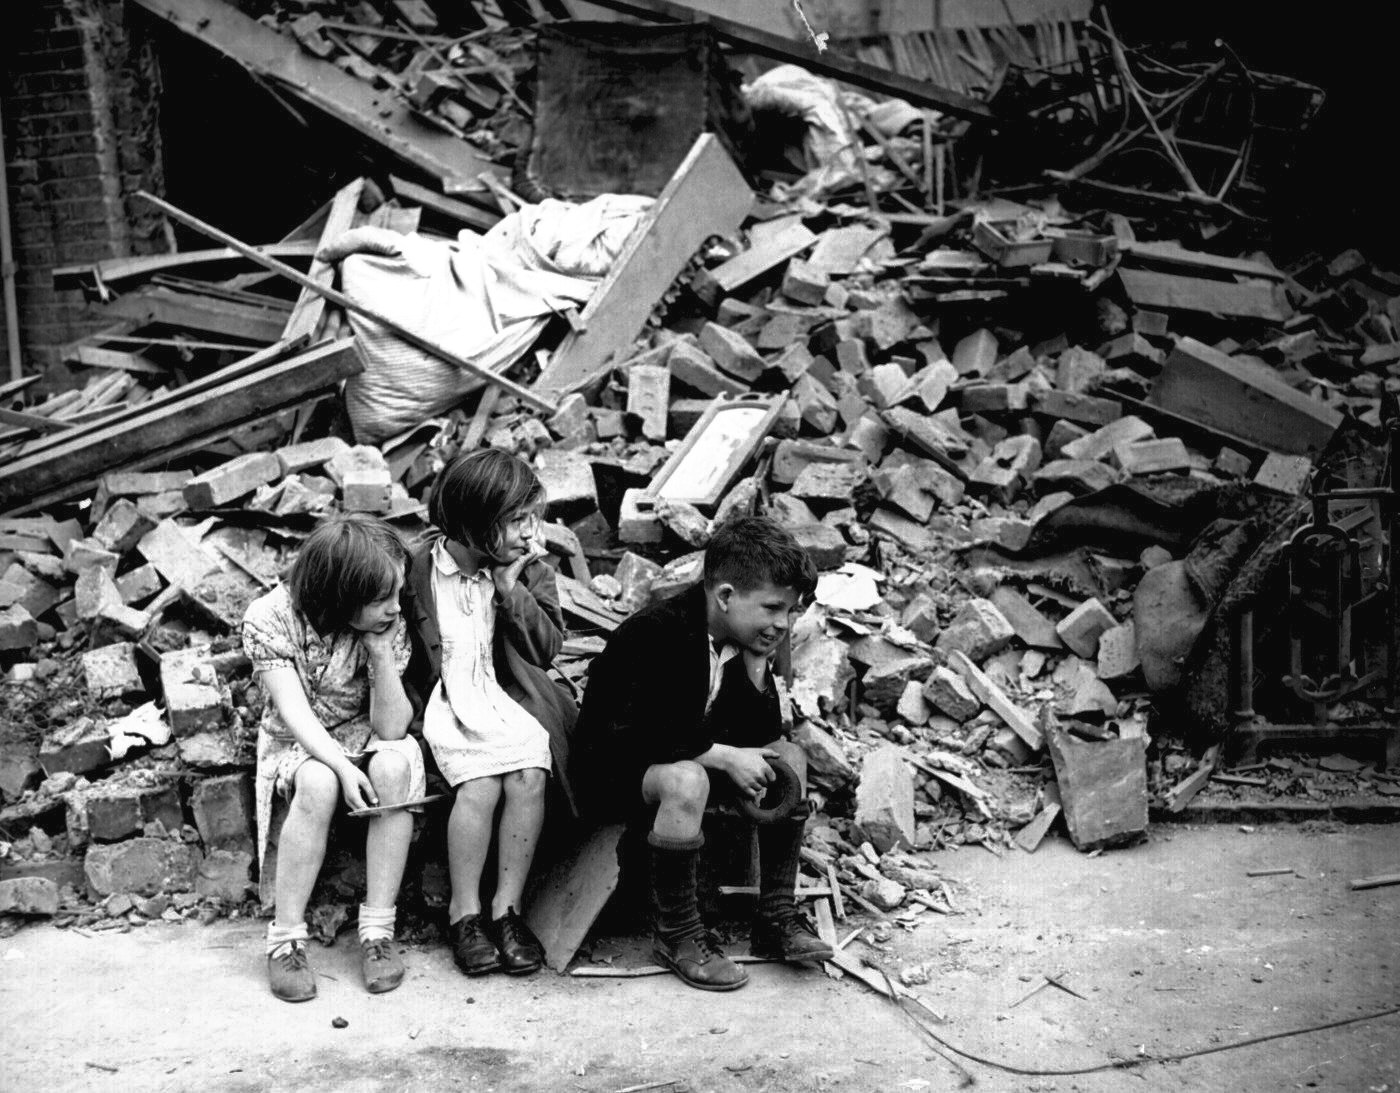 Three Children Sit In Front Of A Pile Rubble Who Are They Related Where Their Parents What Was The Building Before It Destroyed